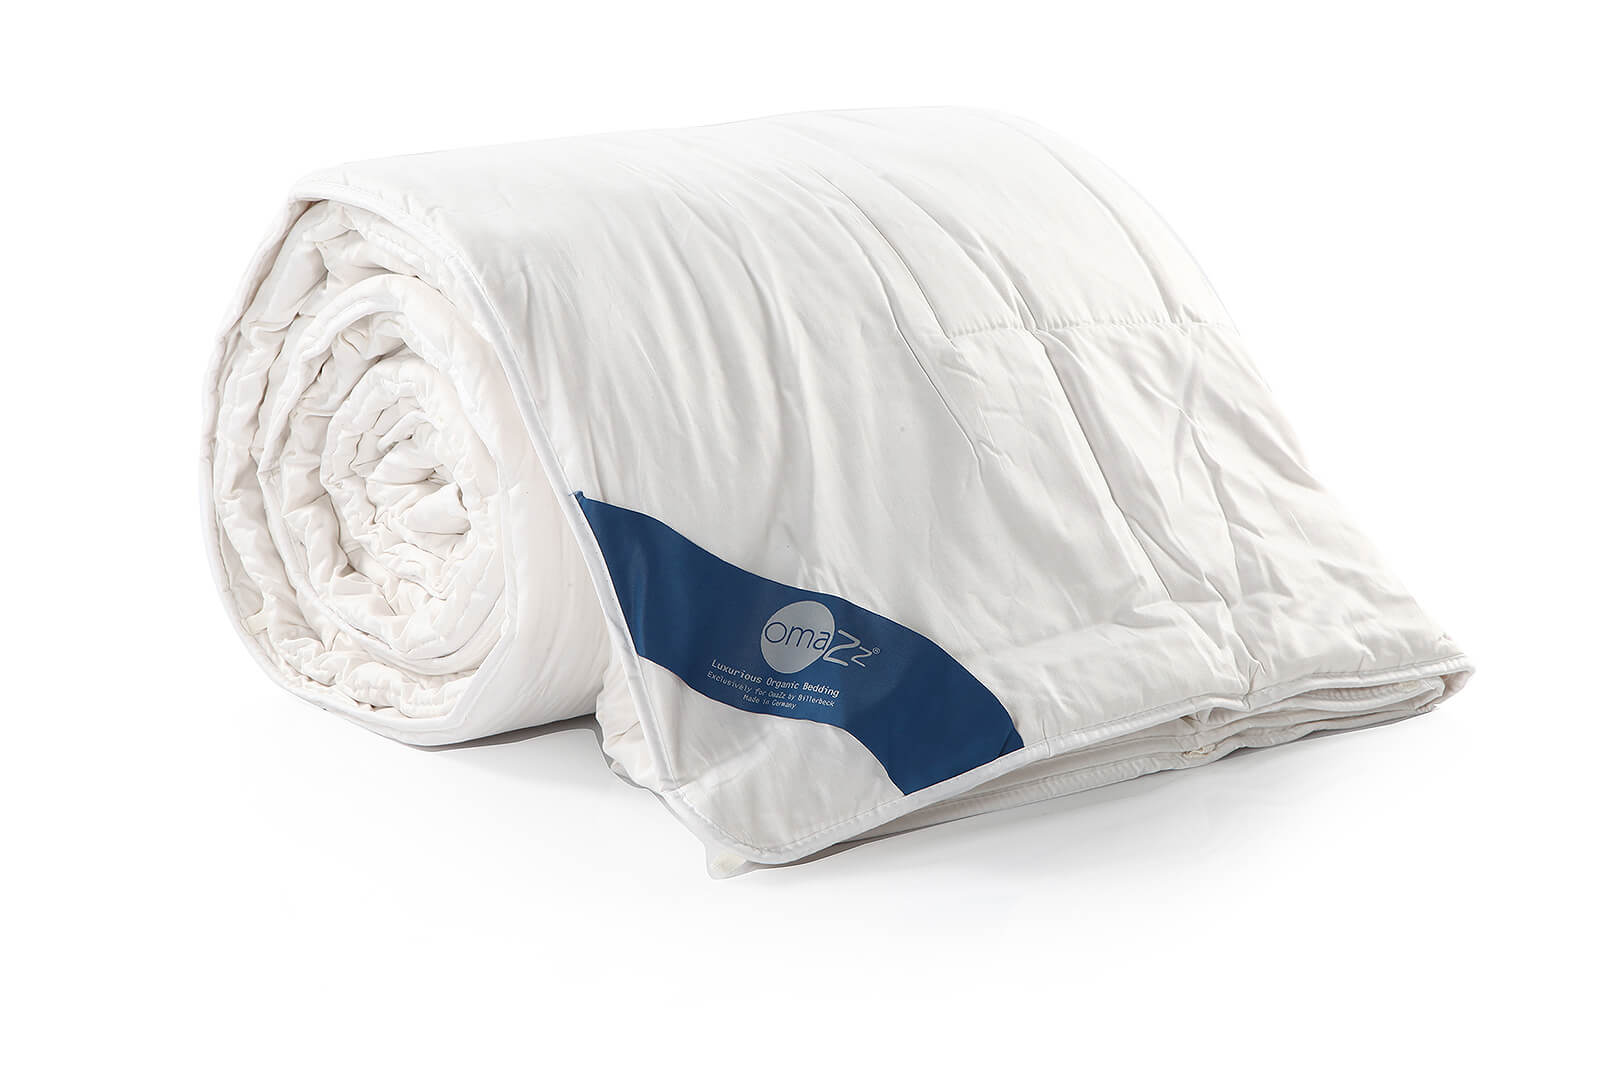 Omazz Accessory Tussah Silk White Goose Down Duvet